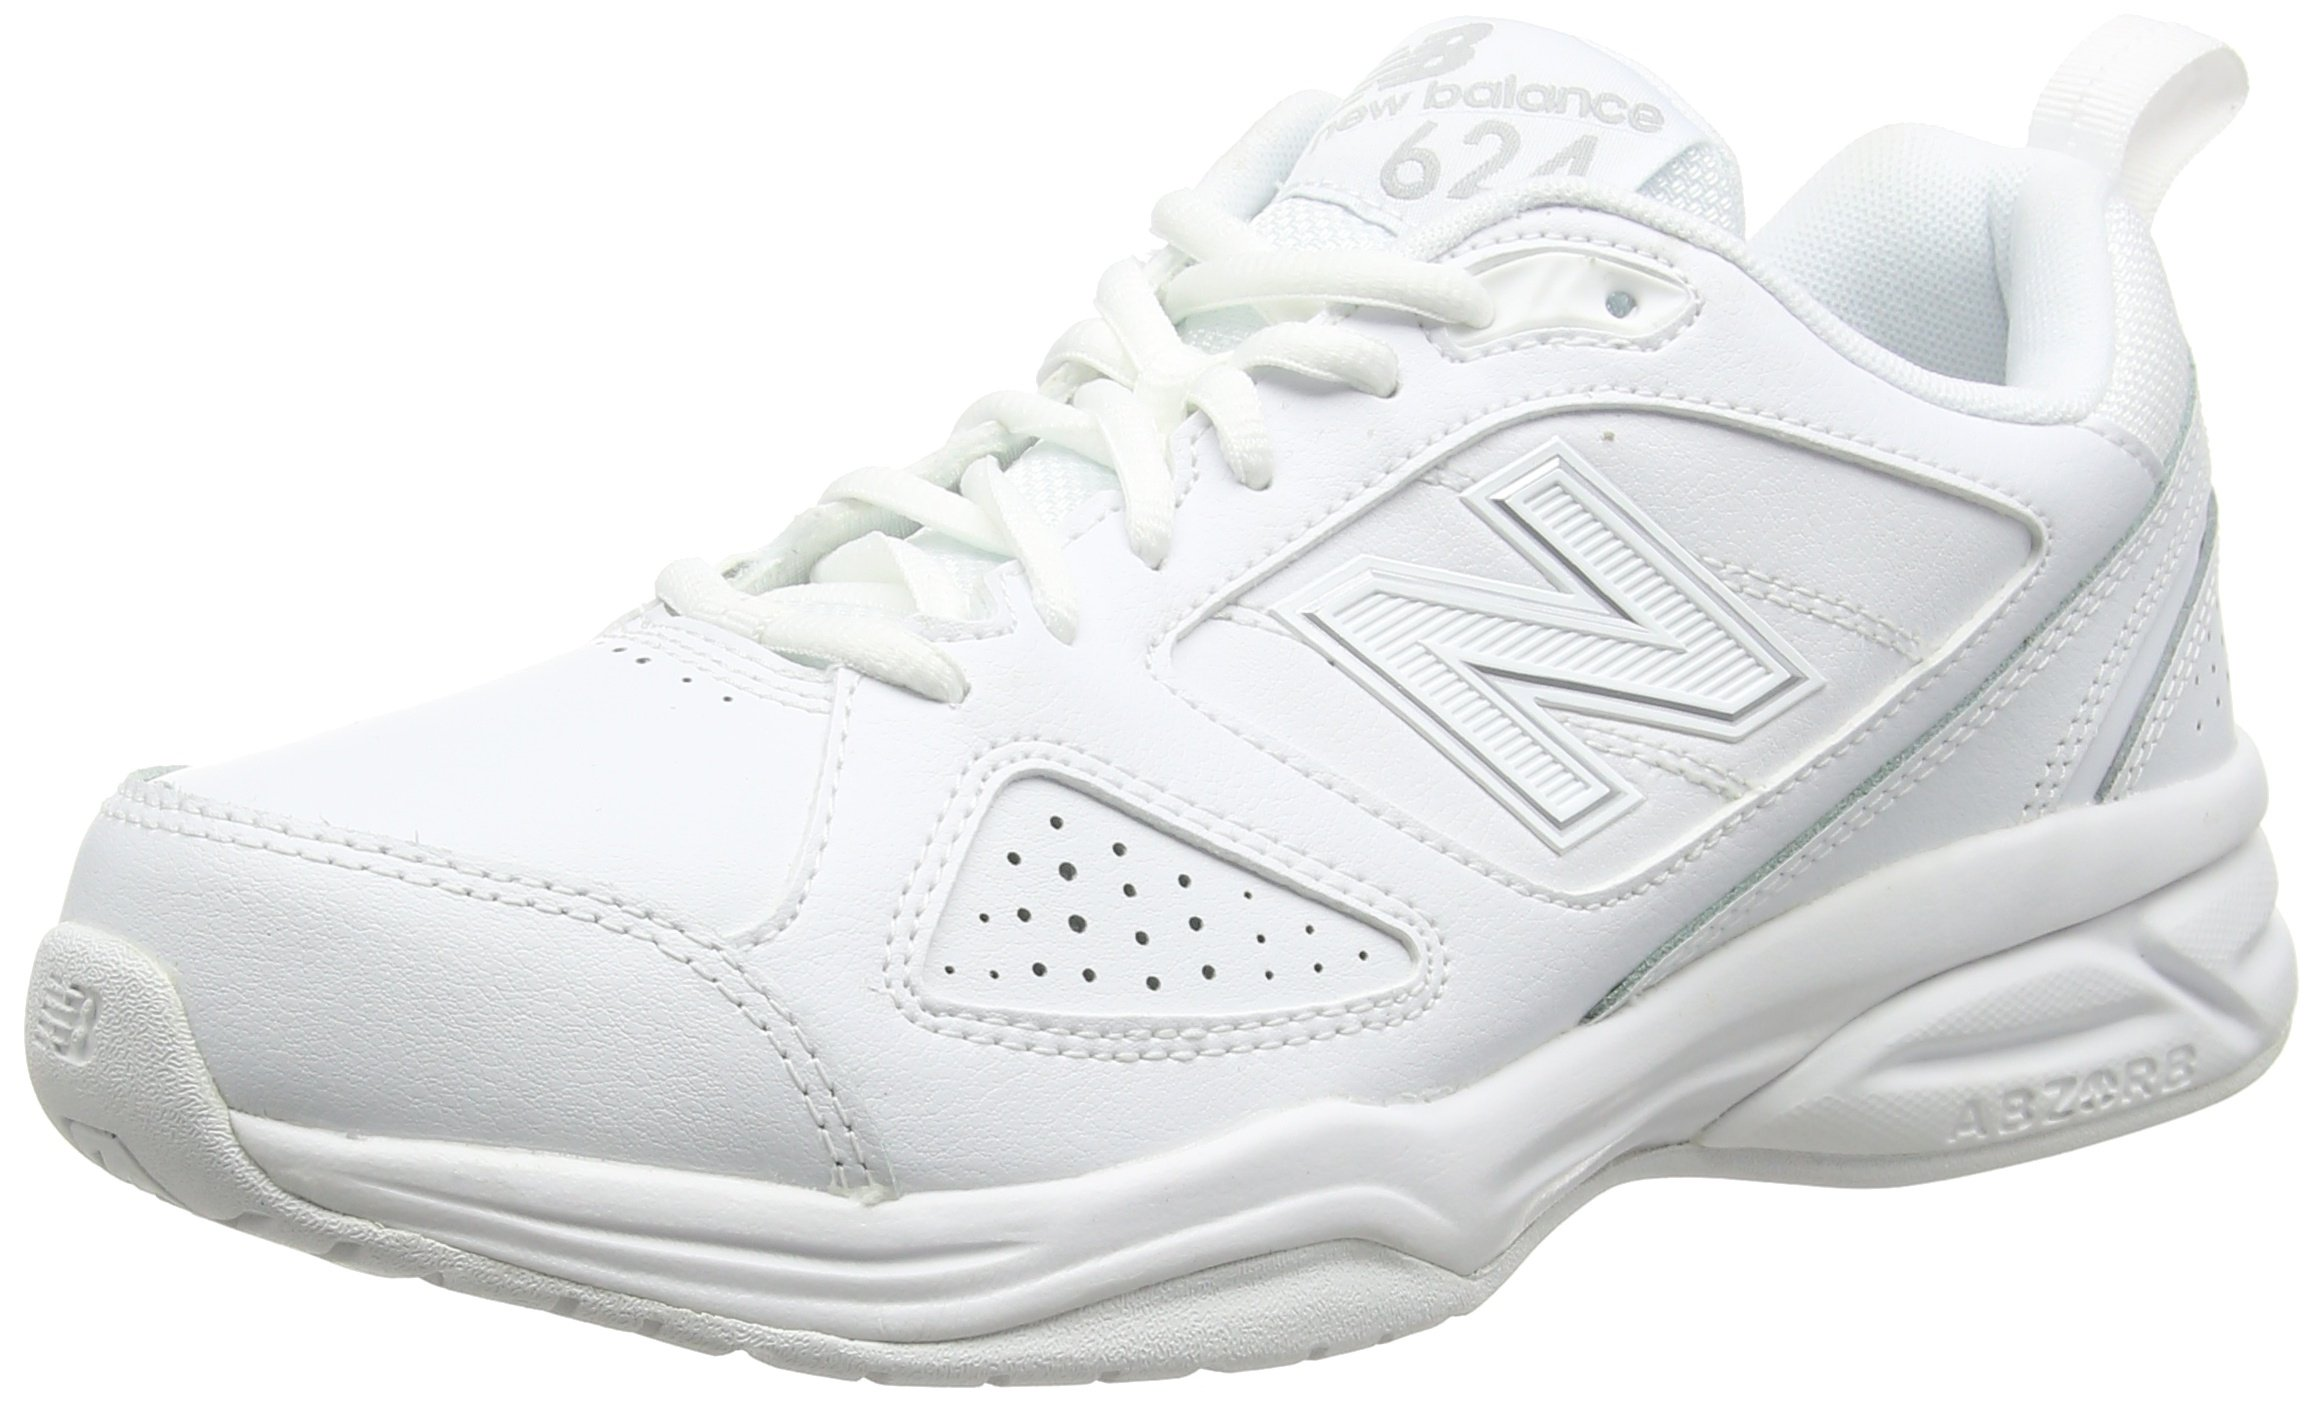 Indoor Multisport Uk Mx624aw4 Eu10 10045 Balance 624Chaussures 5 New HommeBlancwhite v80OnNmw